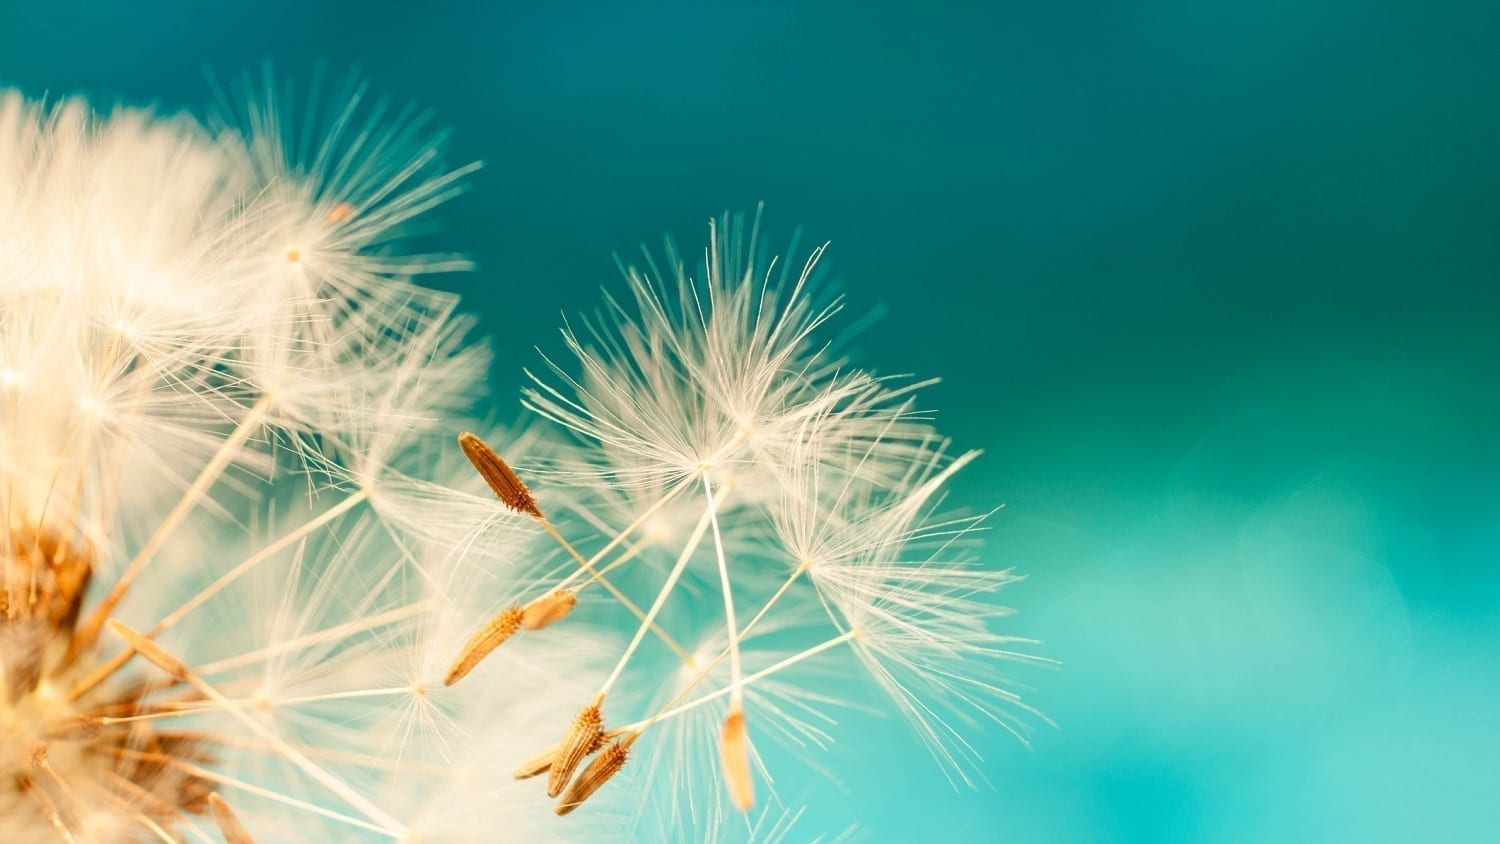 Dandelion seeds blowing from a seed head: Photo 118689372 © Ana Prego | Dreamstime.com